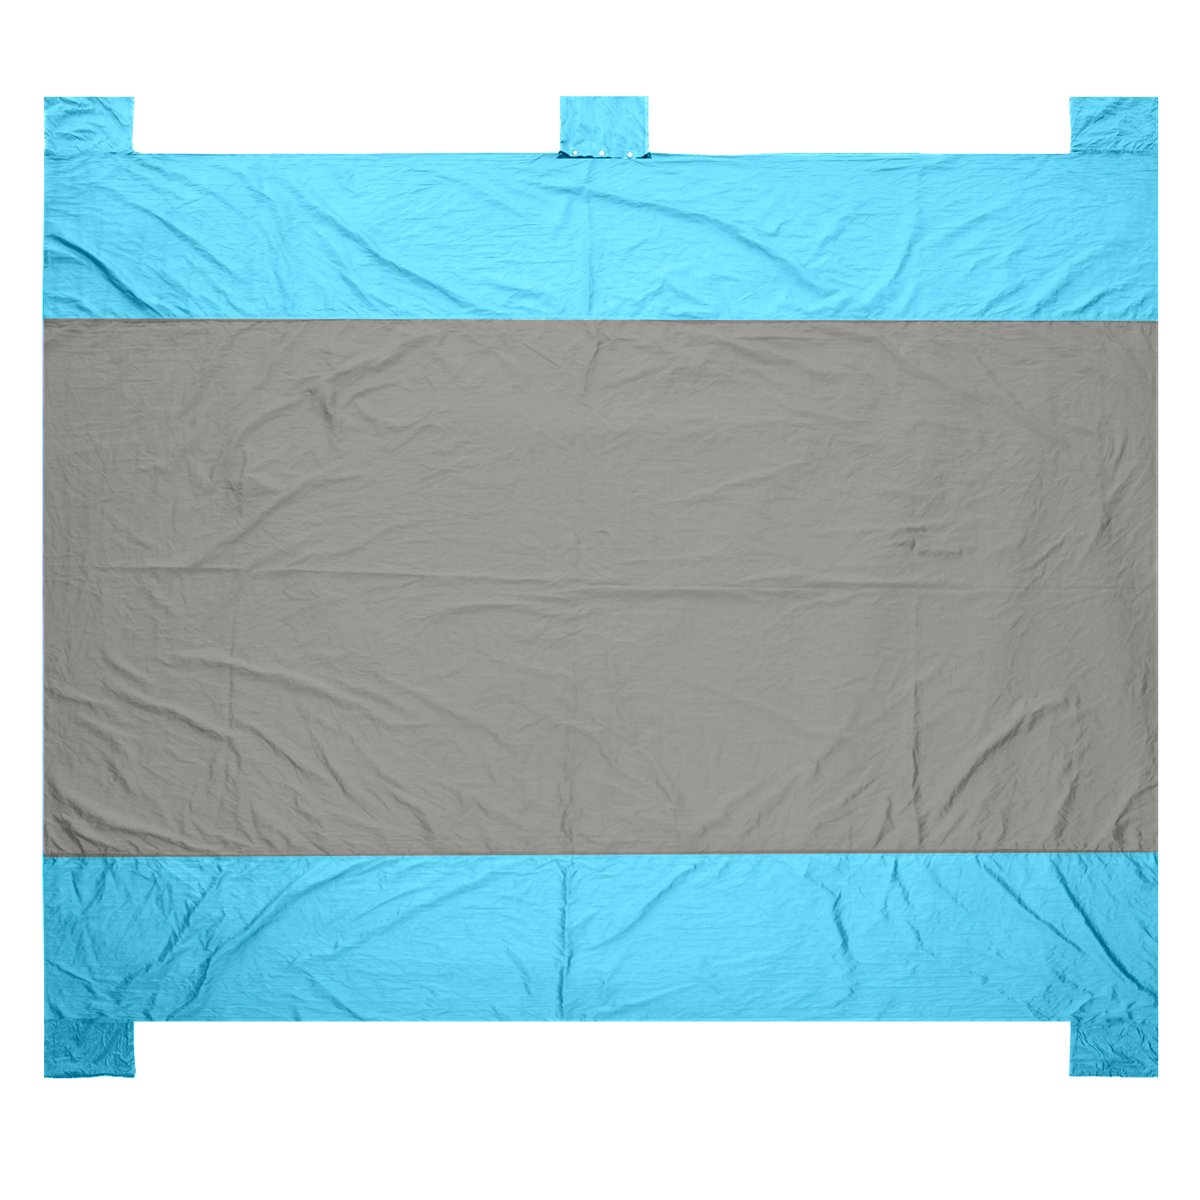 GOOACC Large Outdoor Blanket with Durable Nylon - Huge Beach Mat with Four Anchor